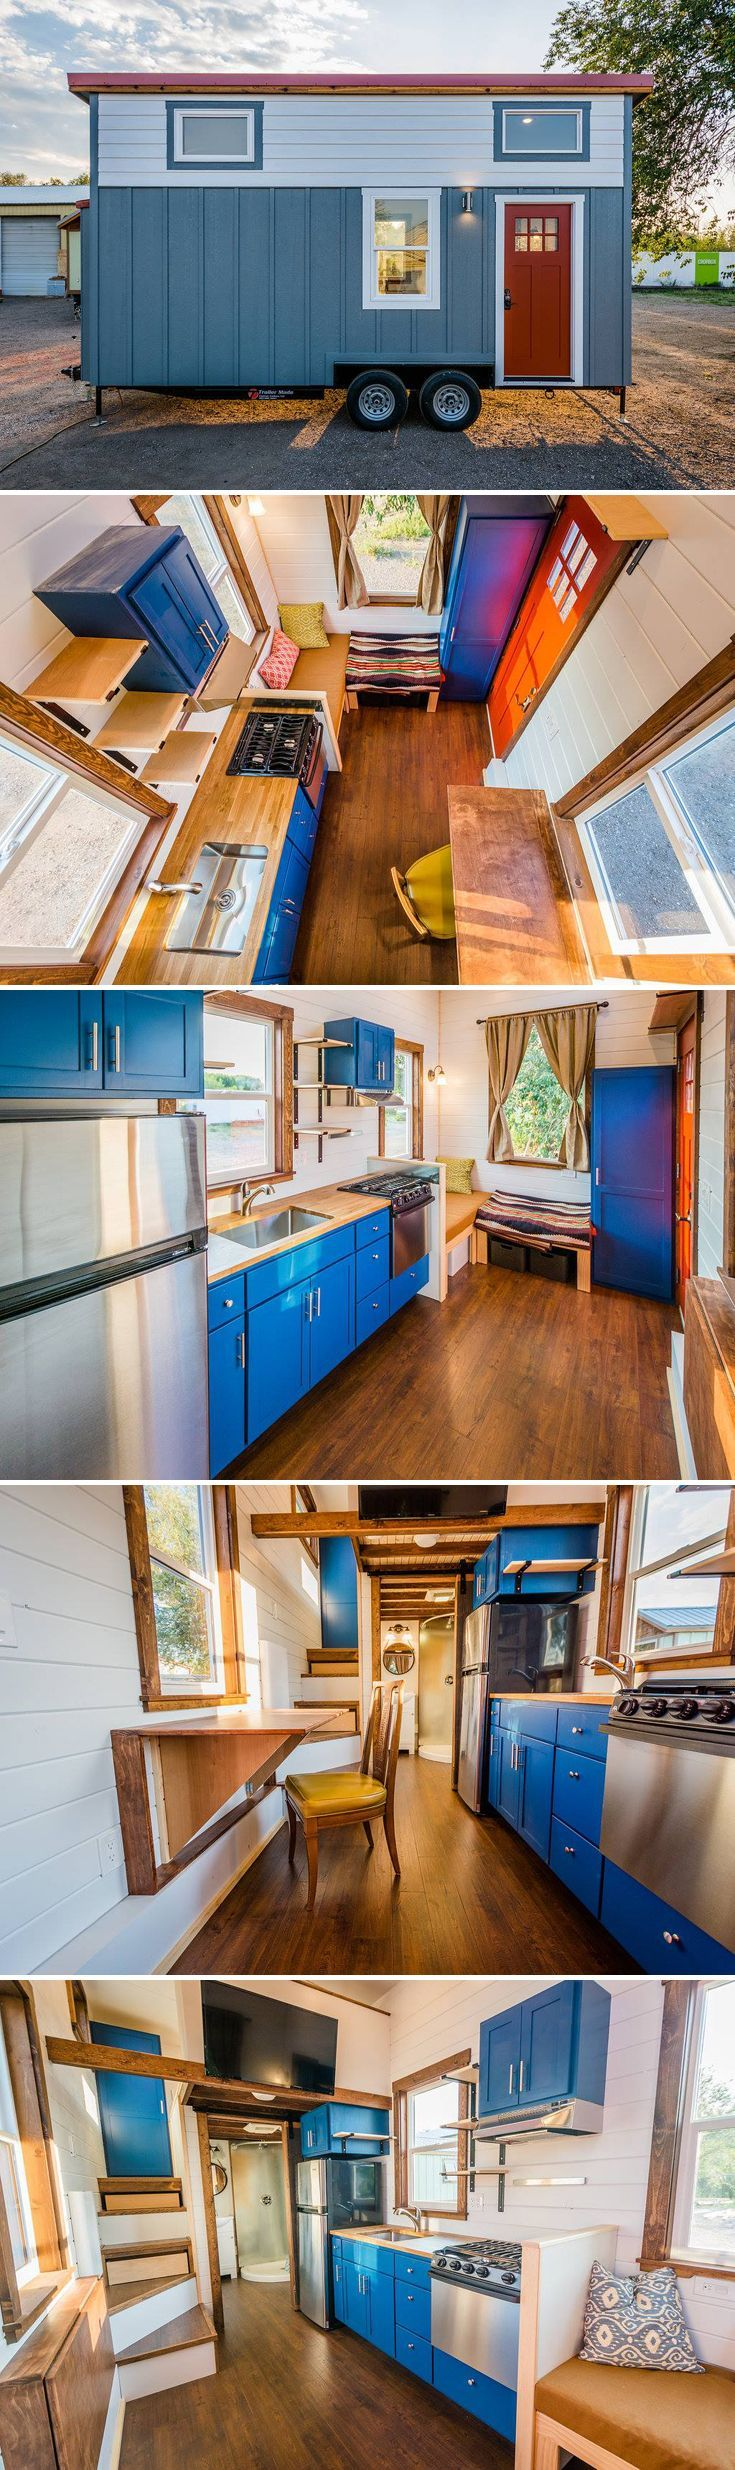 Built With A Priority On Storage Space, This Home By Mitchcraft Tiny Homes  Packs Everything